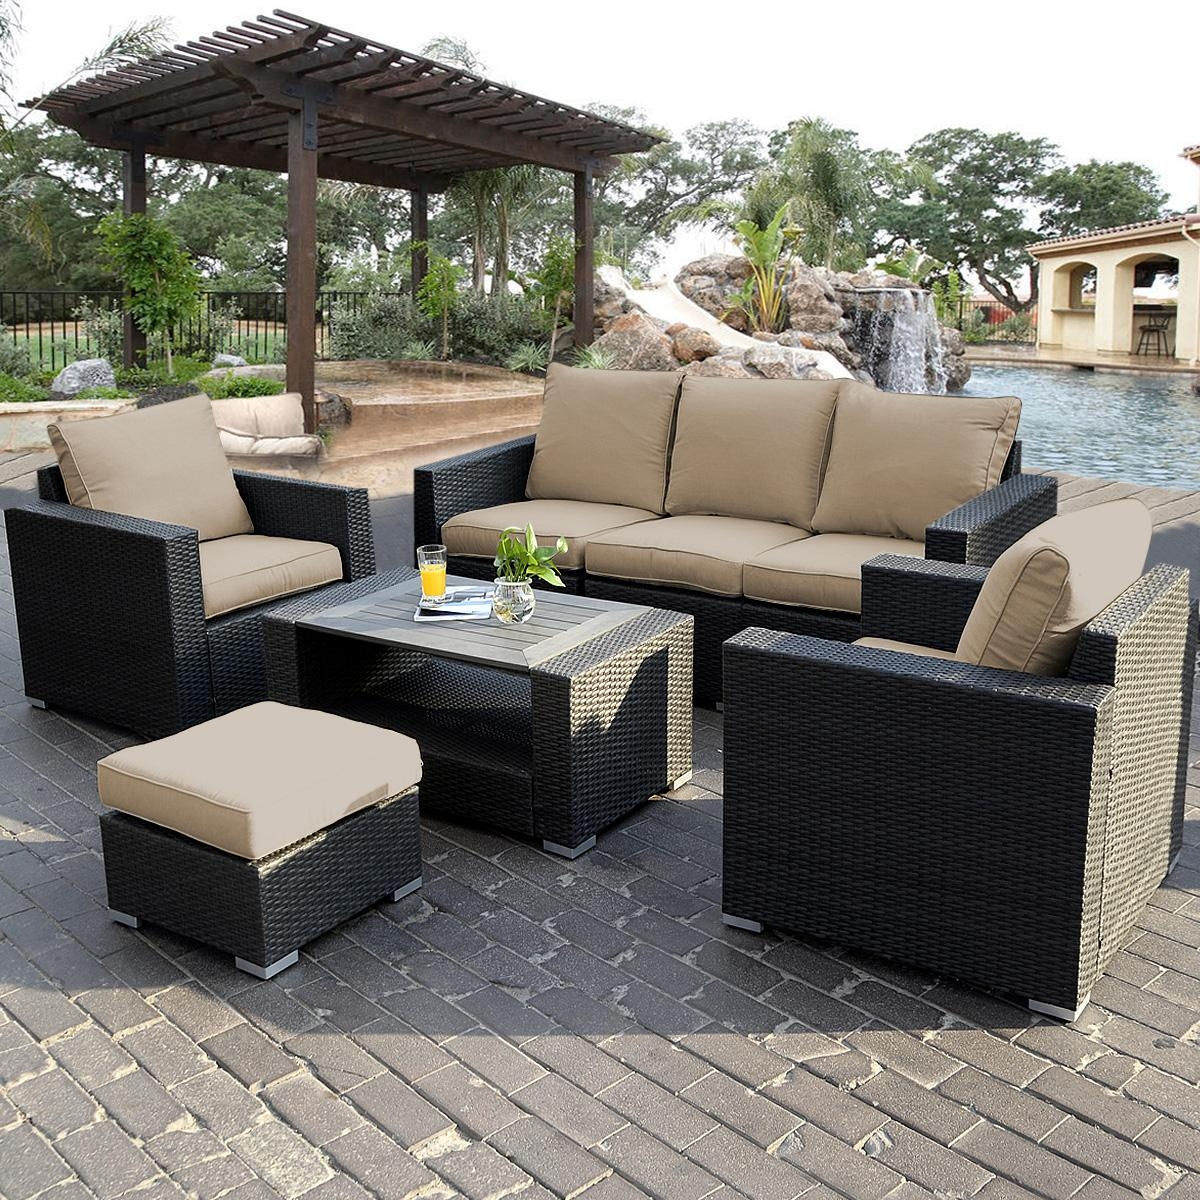 Rattan Outdoor Sofa Furniture | Centerfieldbar Inside Cheap Patio Sofas (Image 15 of 22)